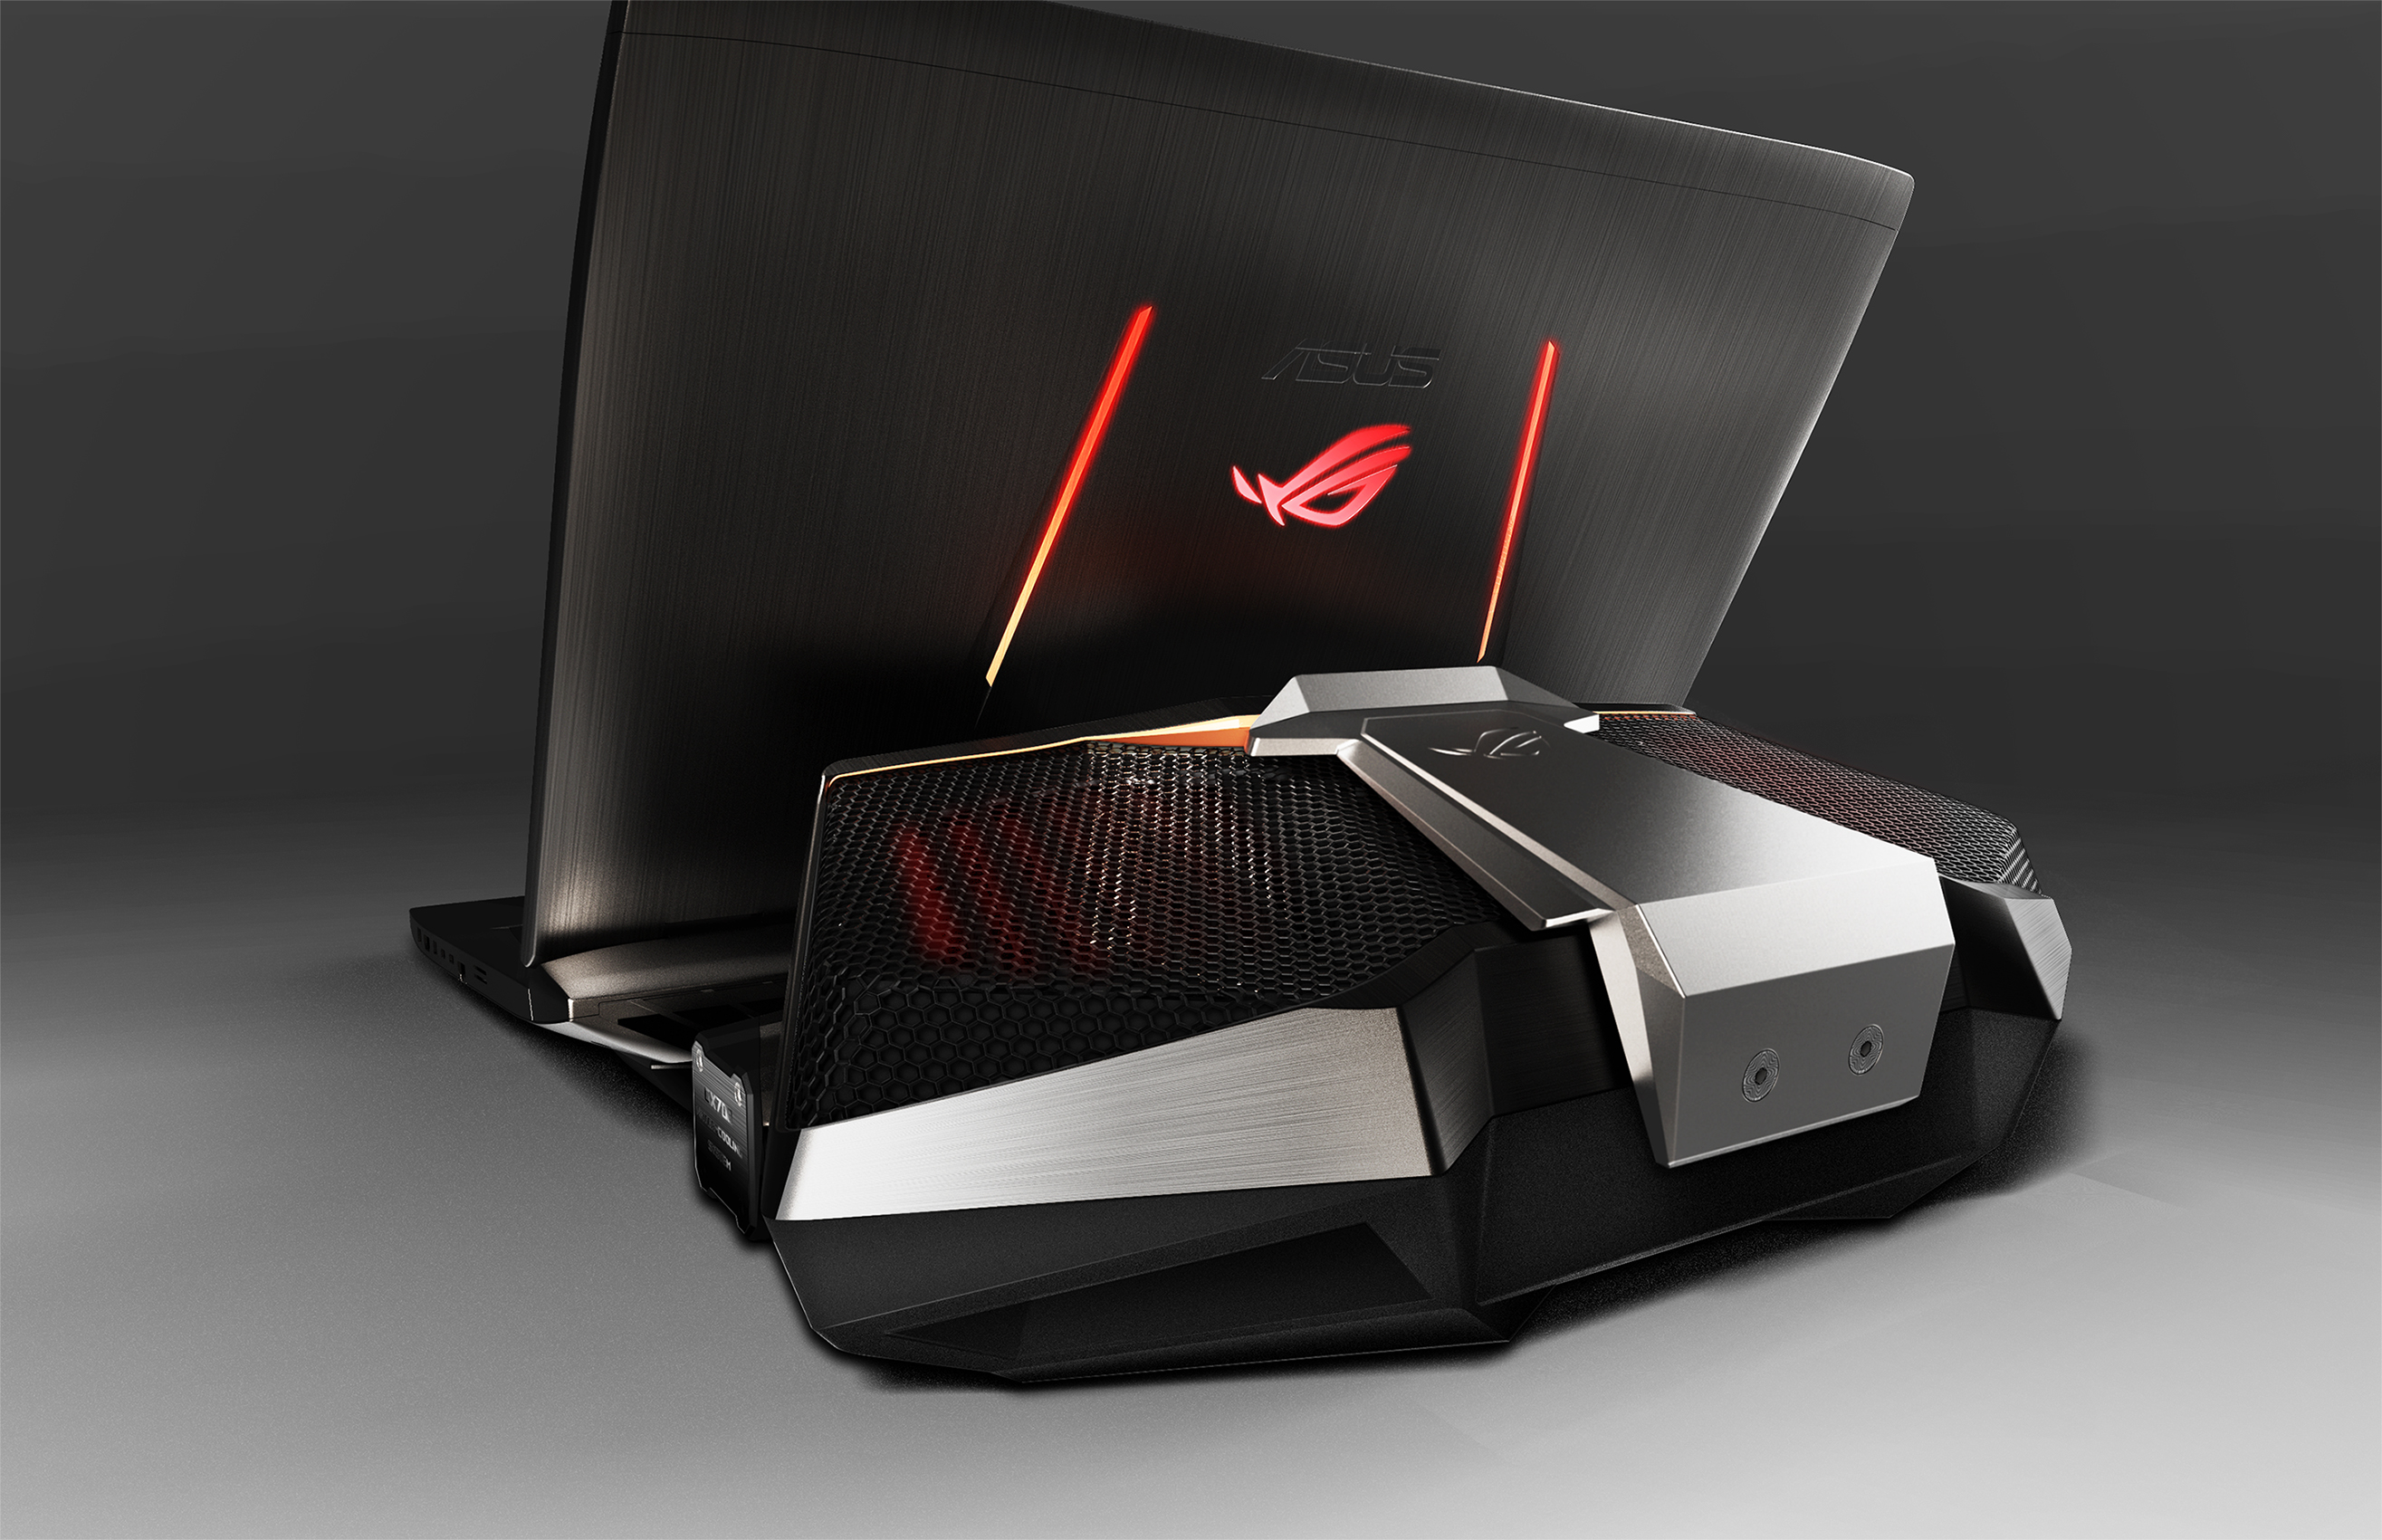 The crazy GX700VO water-cooled laptop from Asus.